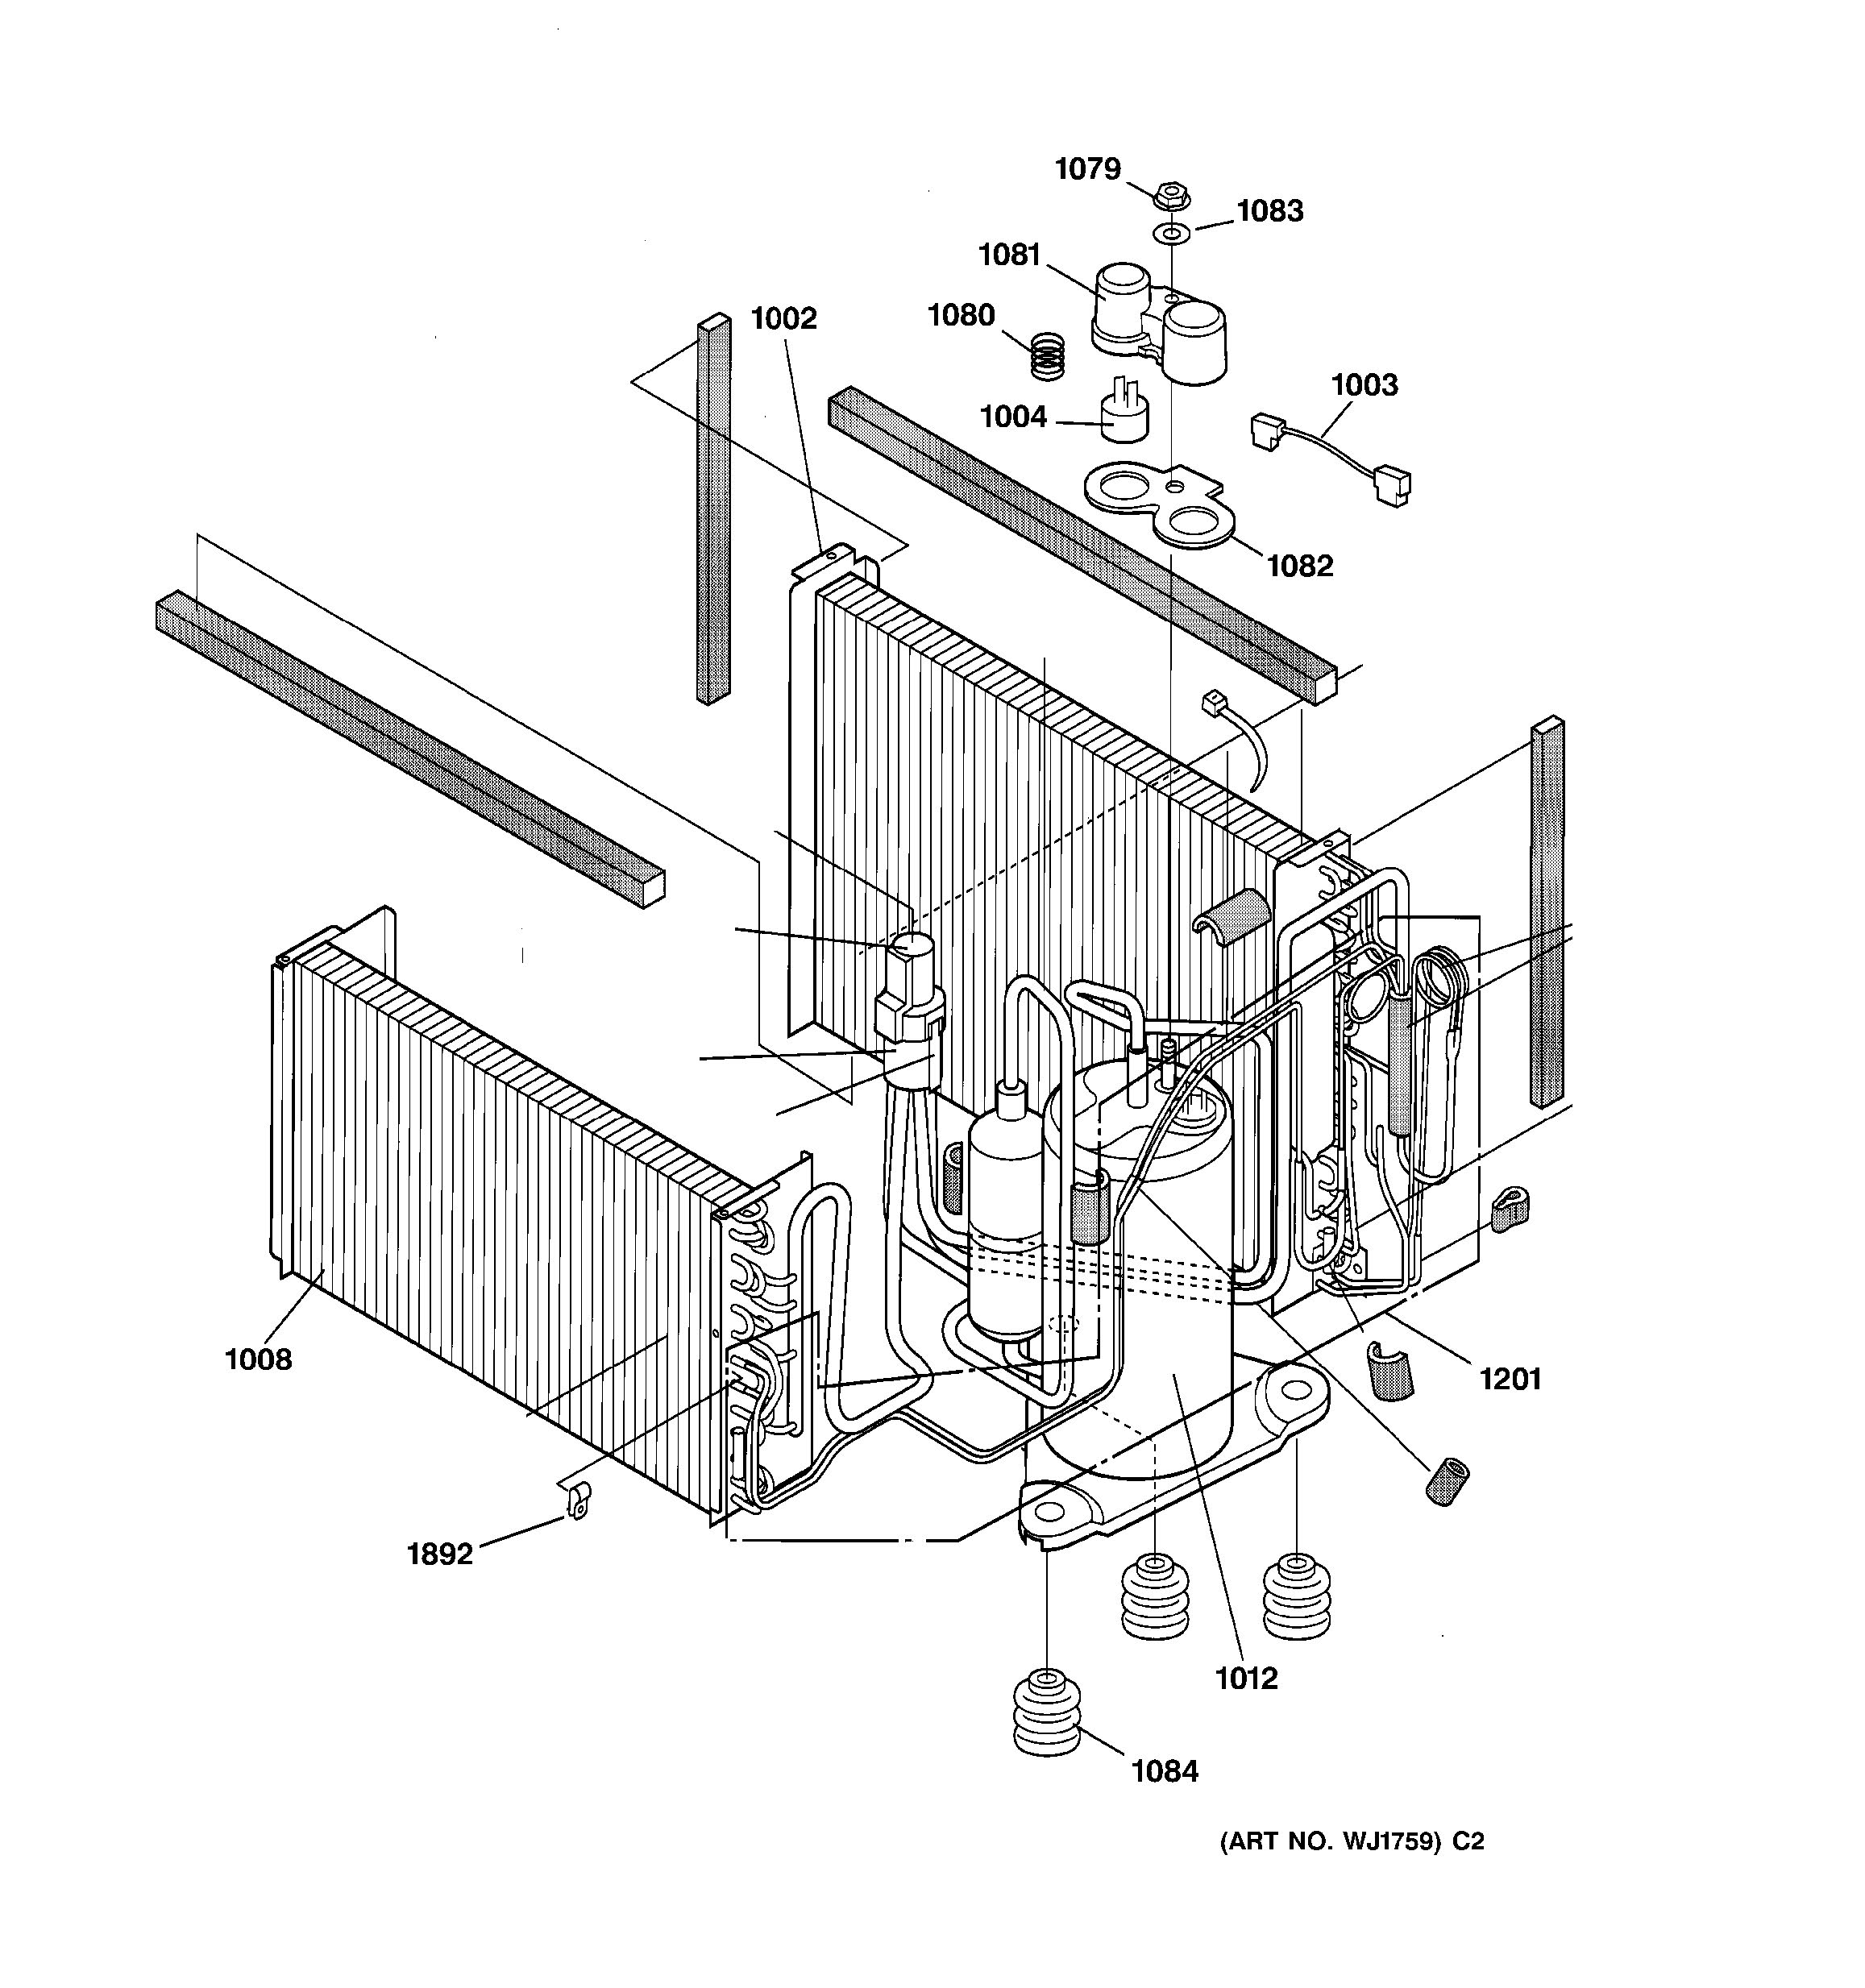 Assembly View For Sealed System Components